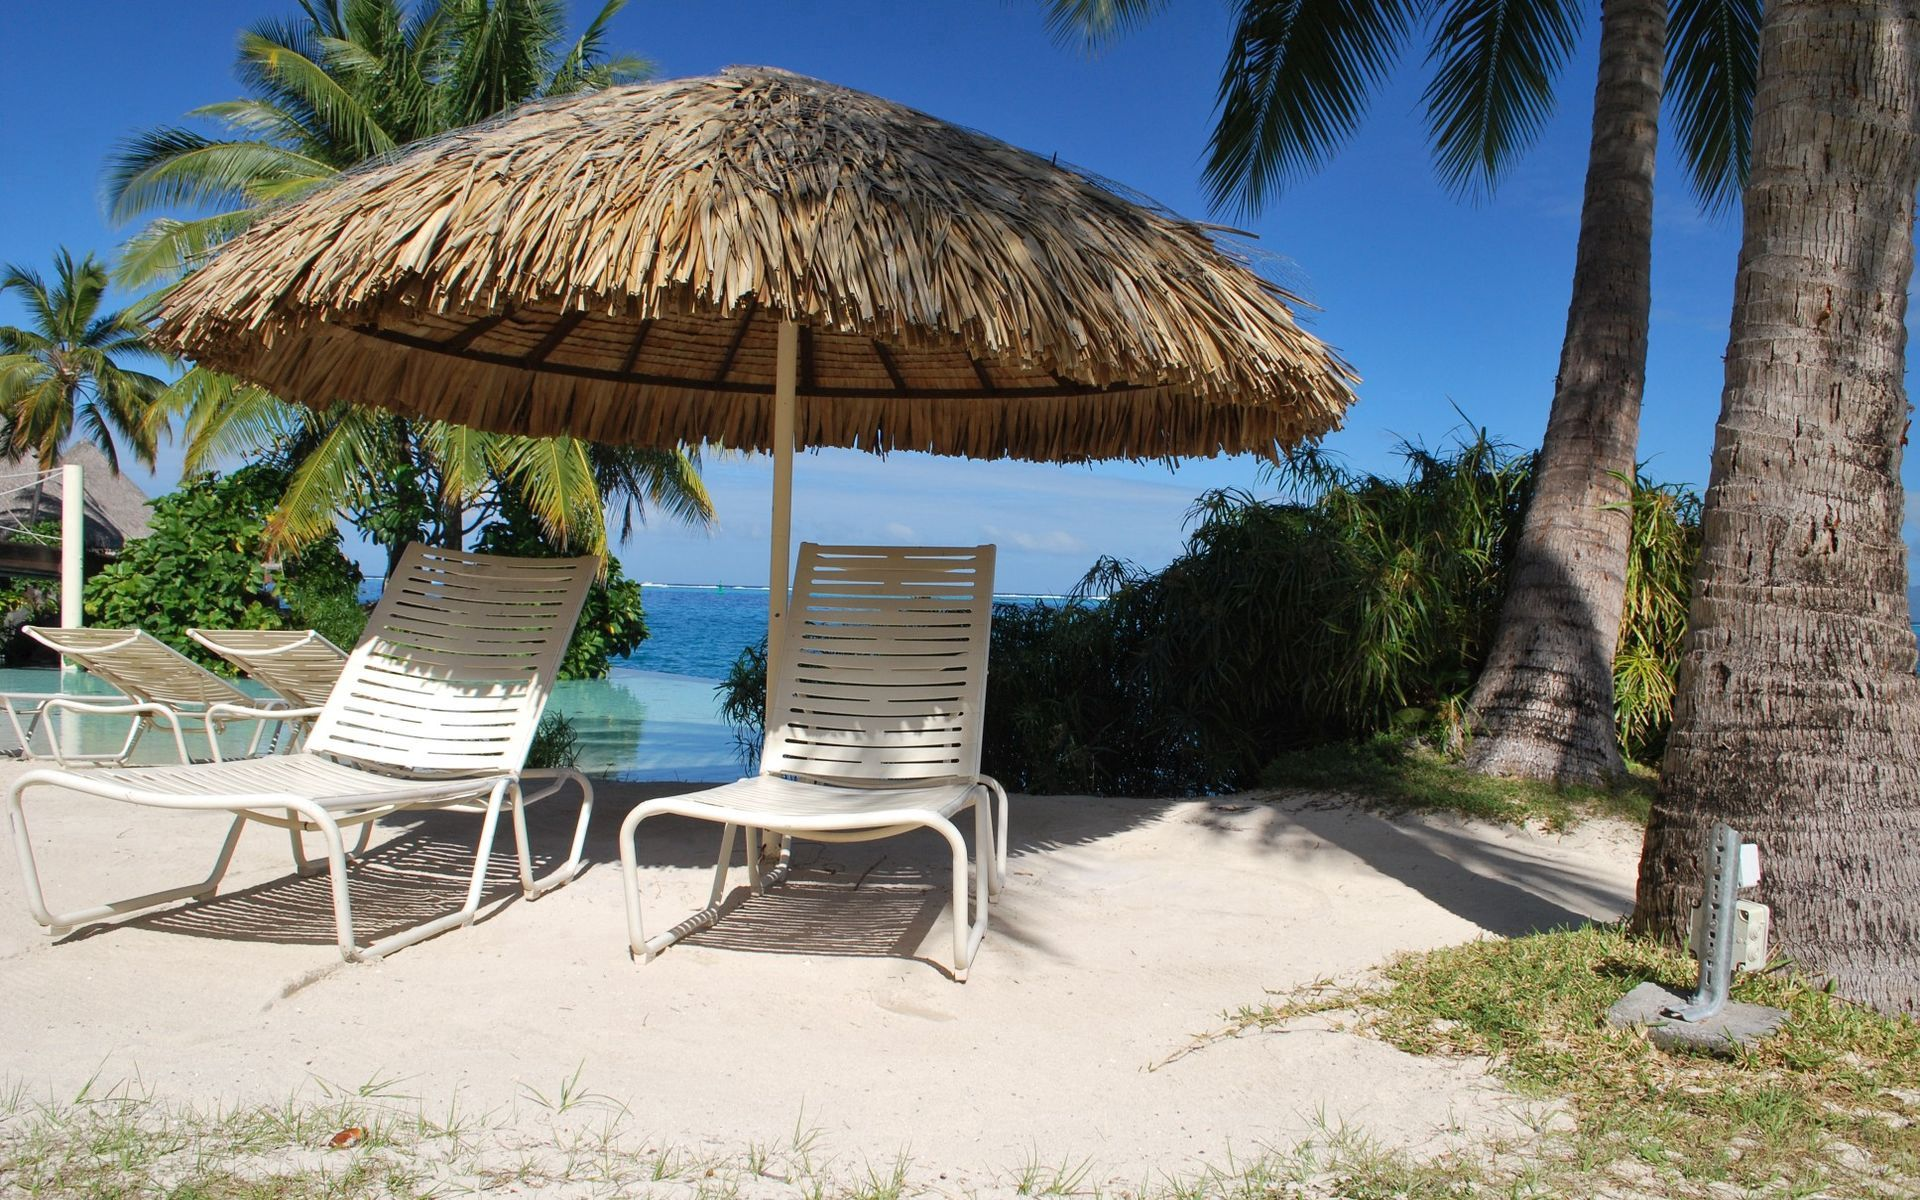 149835 download wallpaper Nature, Canopy, Shed, Sun Lounger, Deck Chair, Armchairs, Chairs, Tropics, Sand, Relaxation, Rest, Resort, Palms screensavers and pictures for free